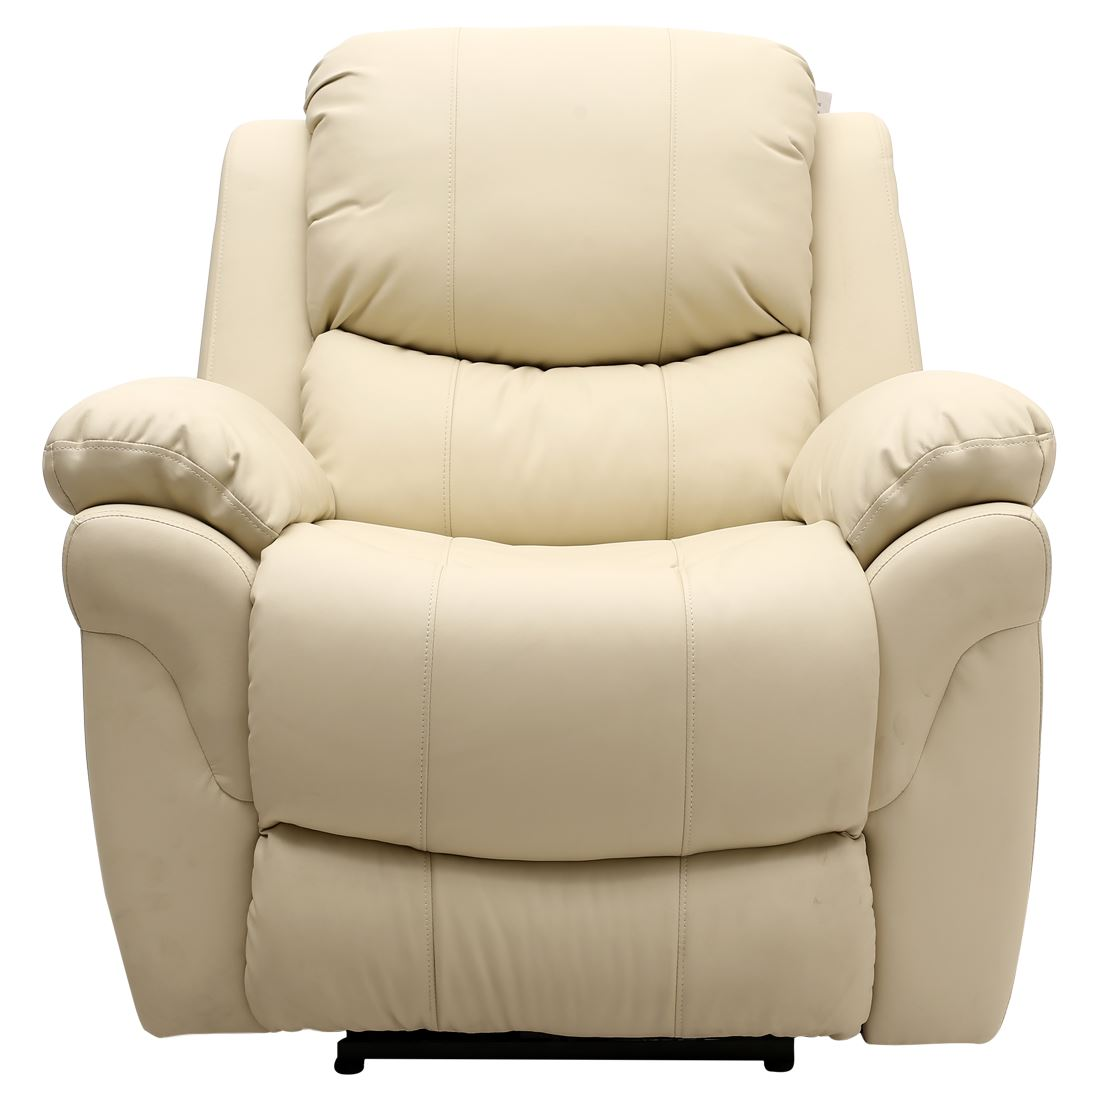 Real Leather Recliner Chairs Madison Electric Cream Real Leather Auto Recliner Armchair